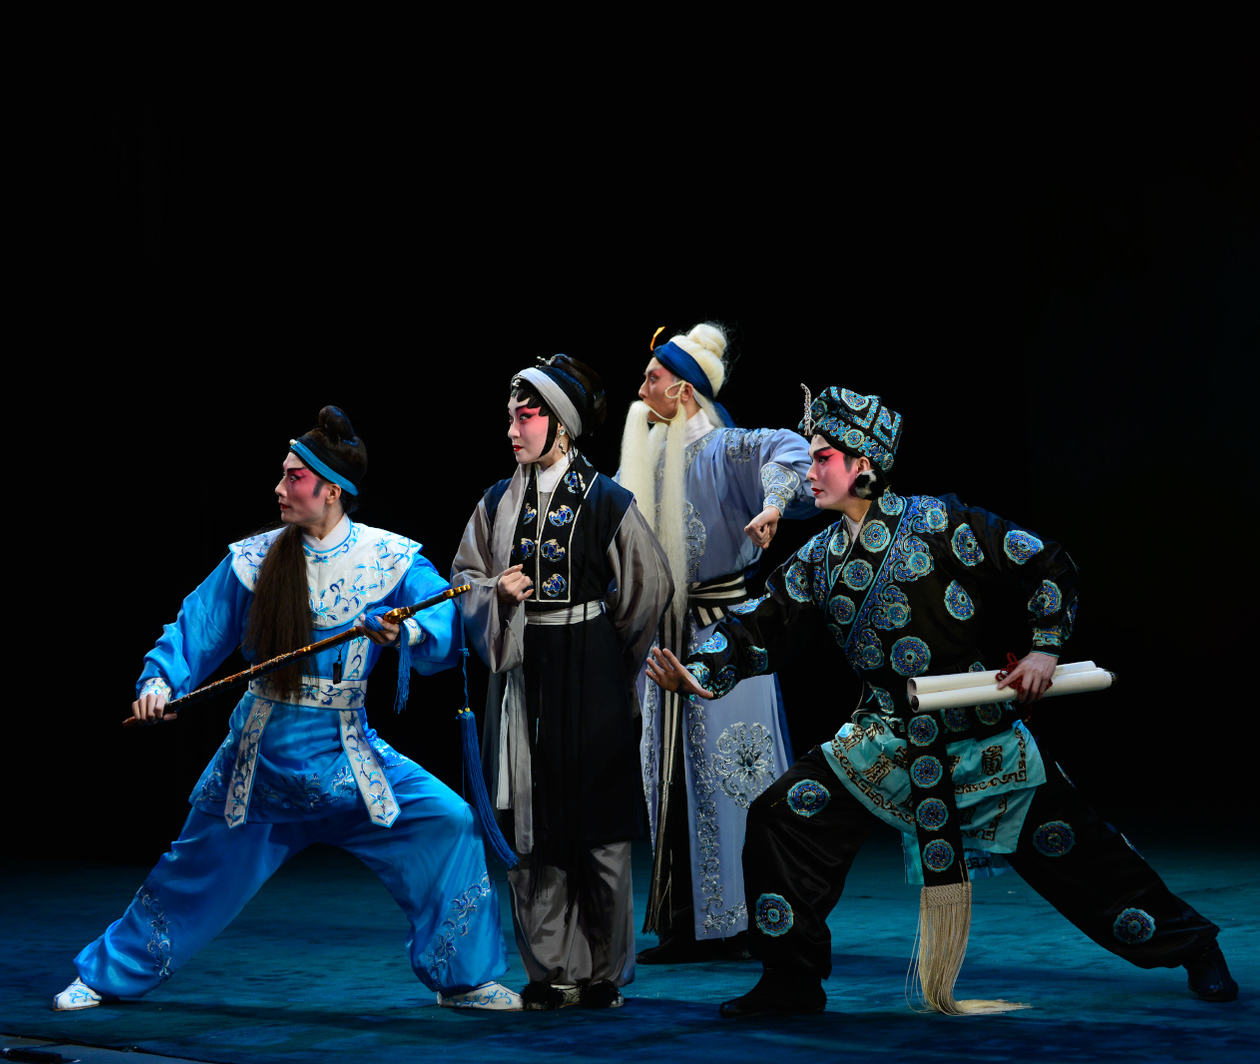 Cantonese Opera: from Backstage to the Stage